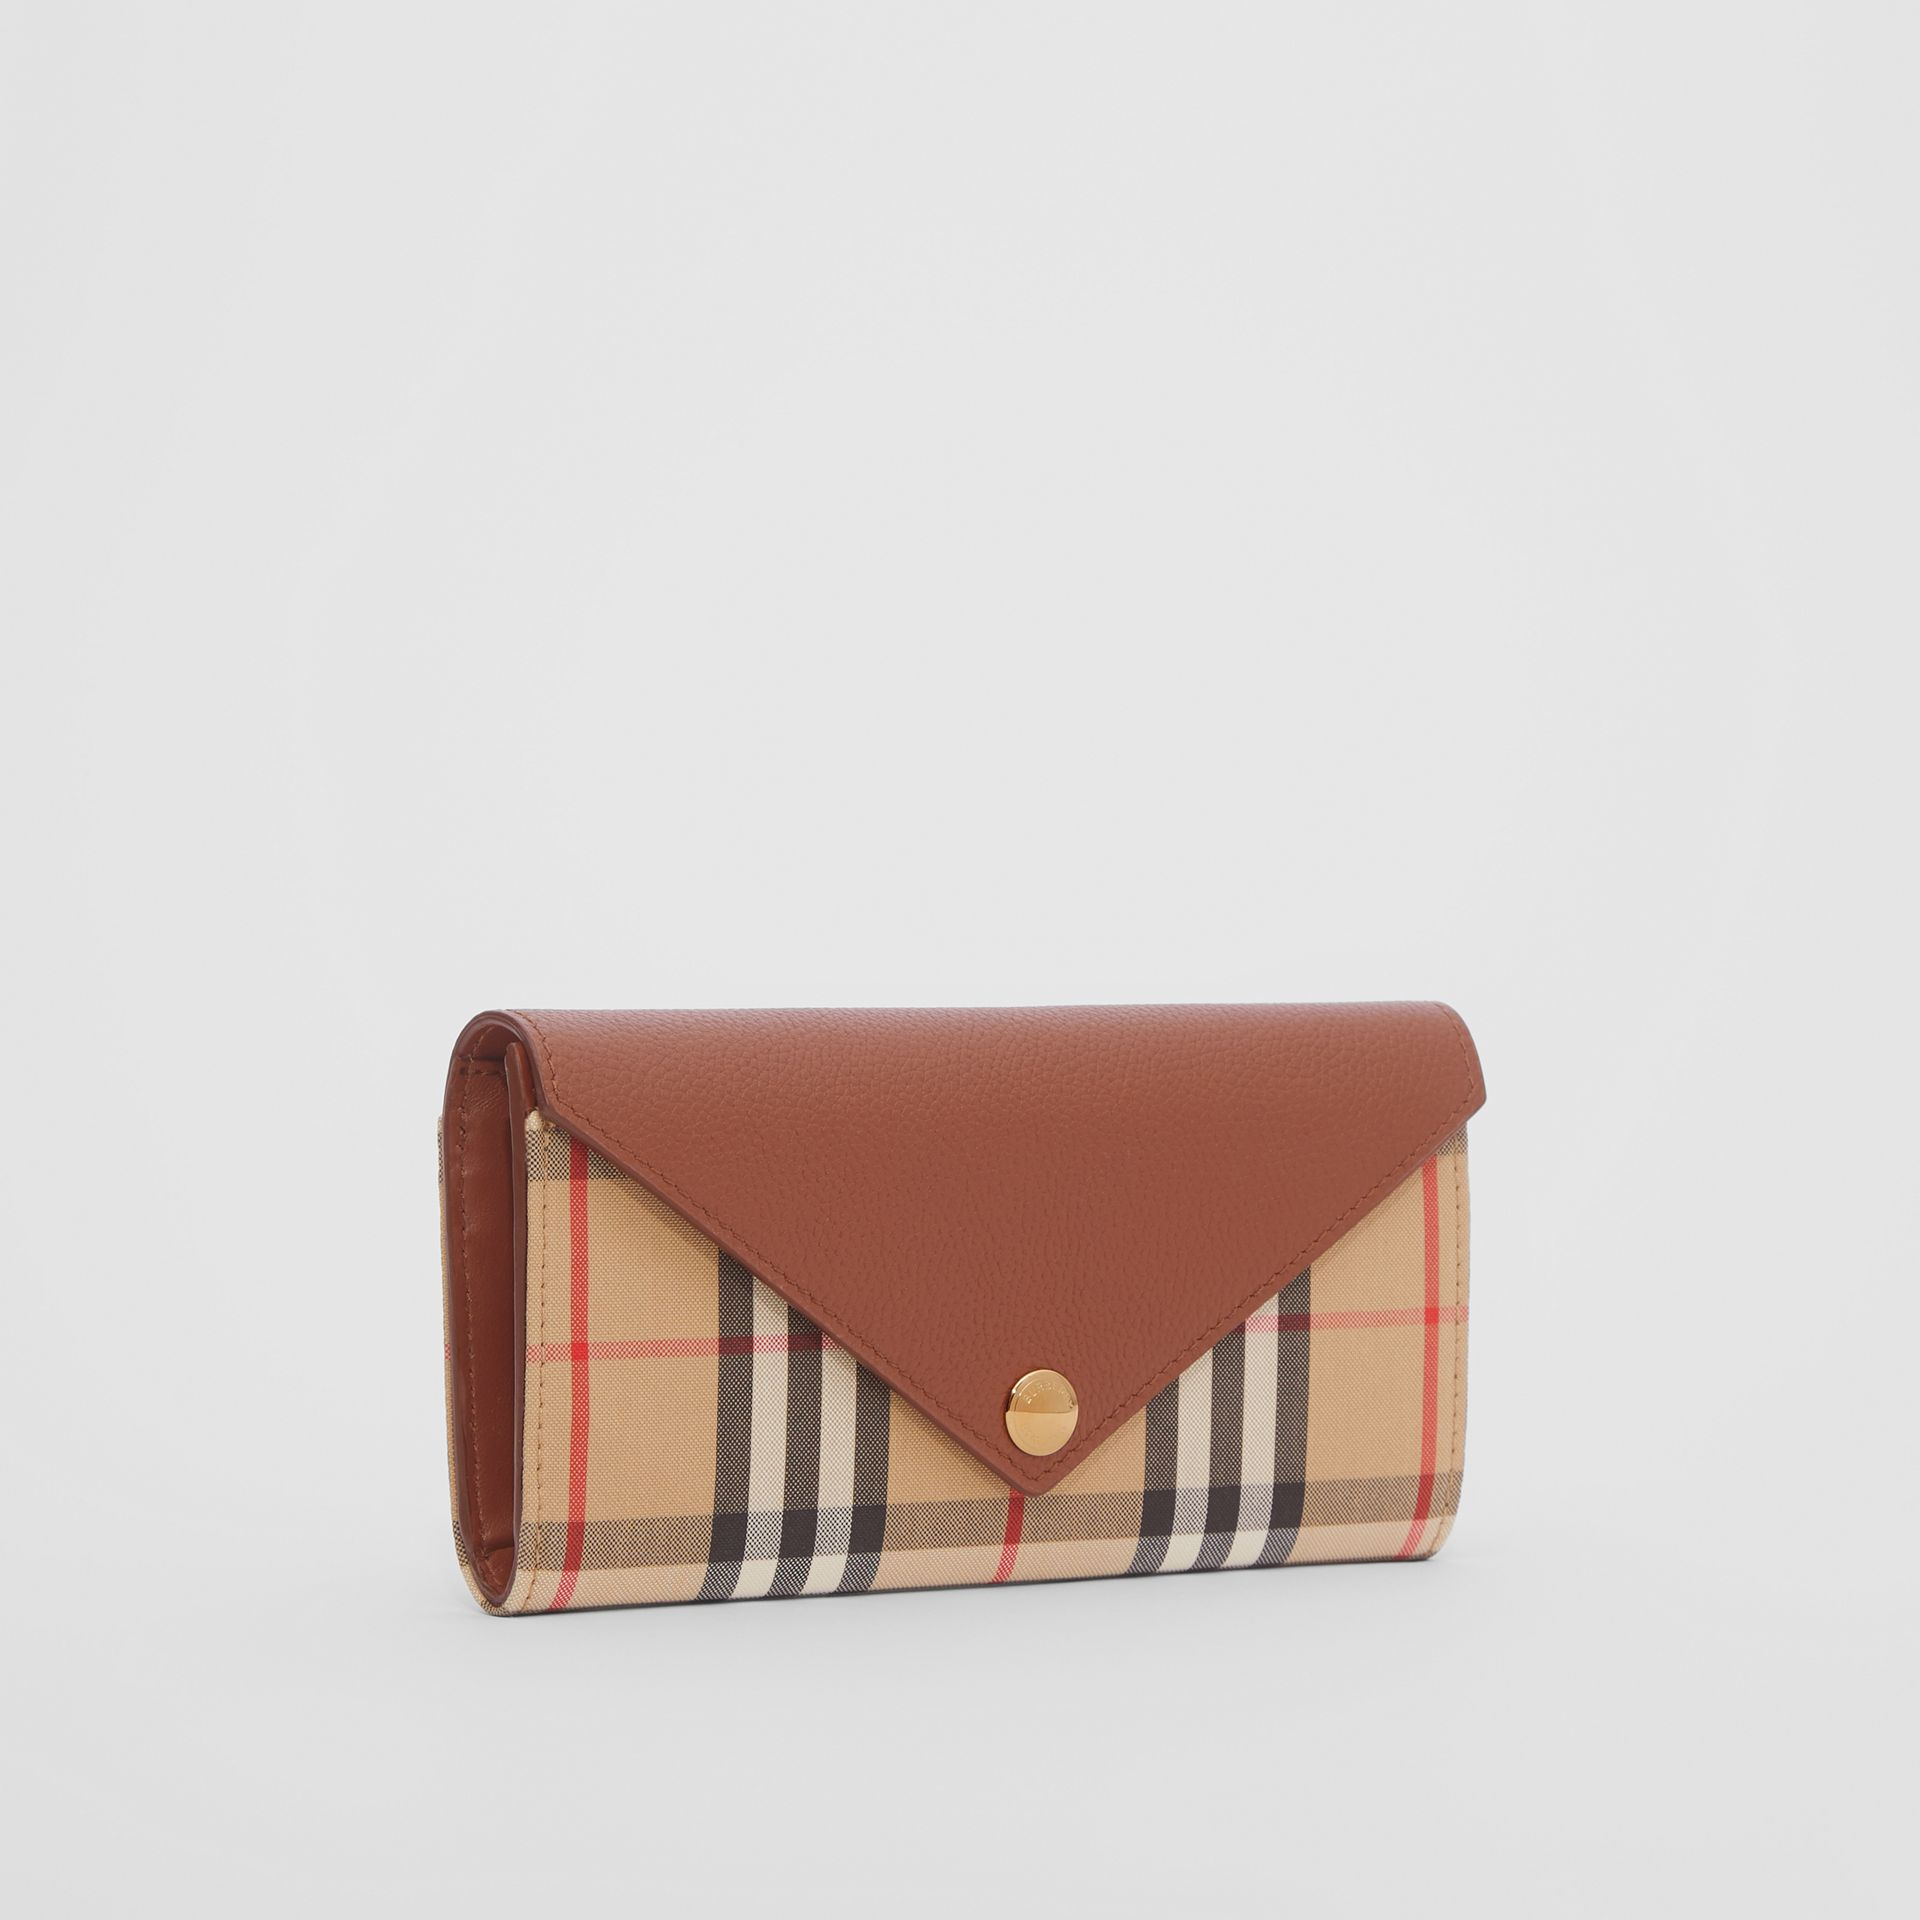 Vintage Check and Leather Continental Wallet in Tan - Women | Burberry - gallery image 4